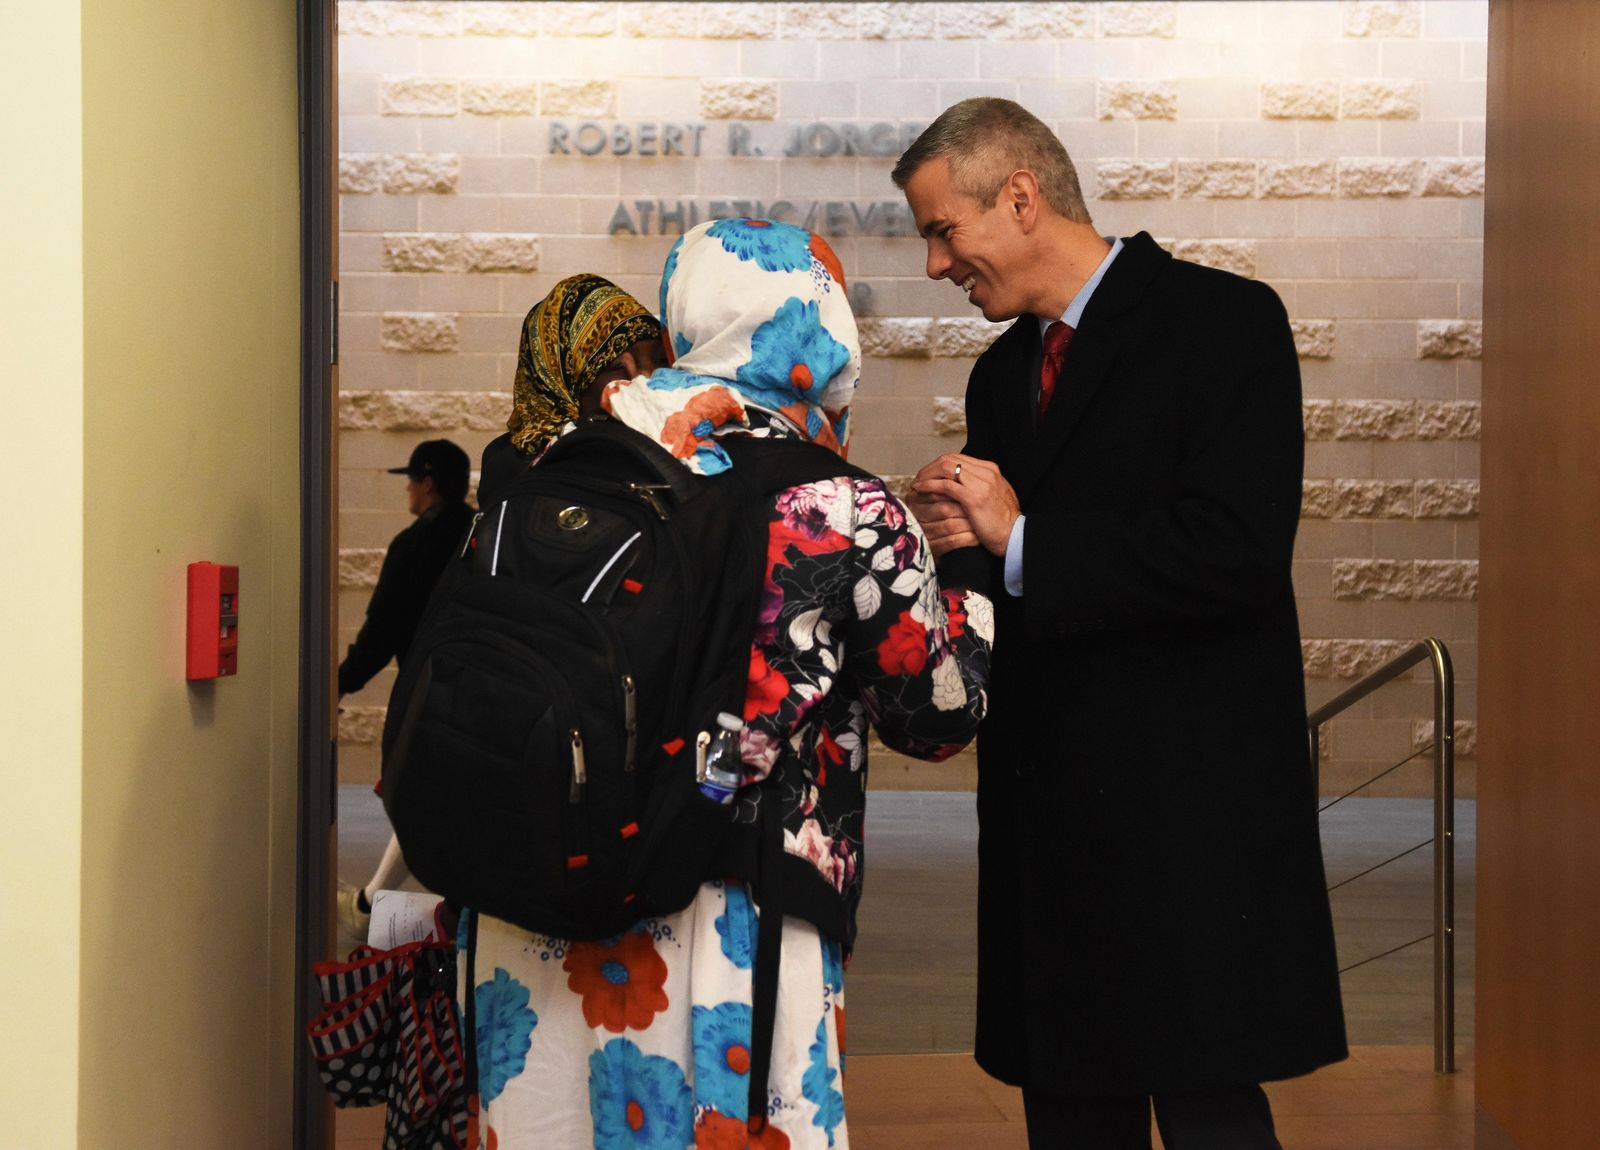 Anthony Brindisi, right, the Democratic candidate for New York's 22nd Congressional District, chats with Habiba Mberwa, left, after casting his vote at Mohawk Valley Community College in Utica, N.Y., Tuesday, Nov. 6, 2018. (AP Photo/Heather Ainsworth)